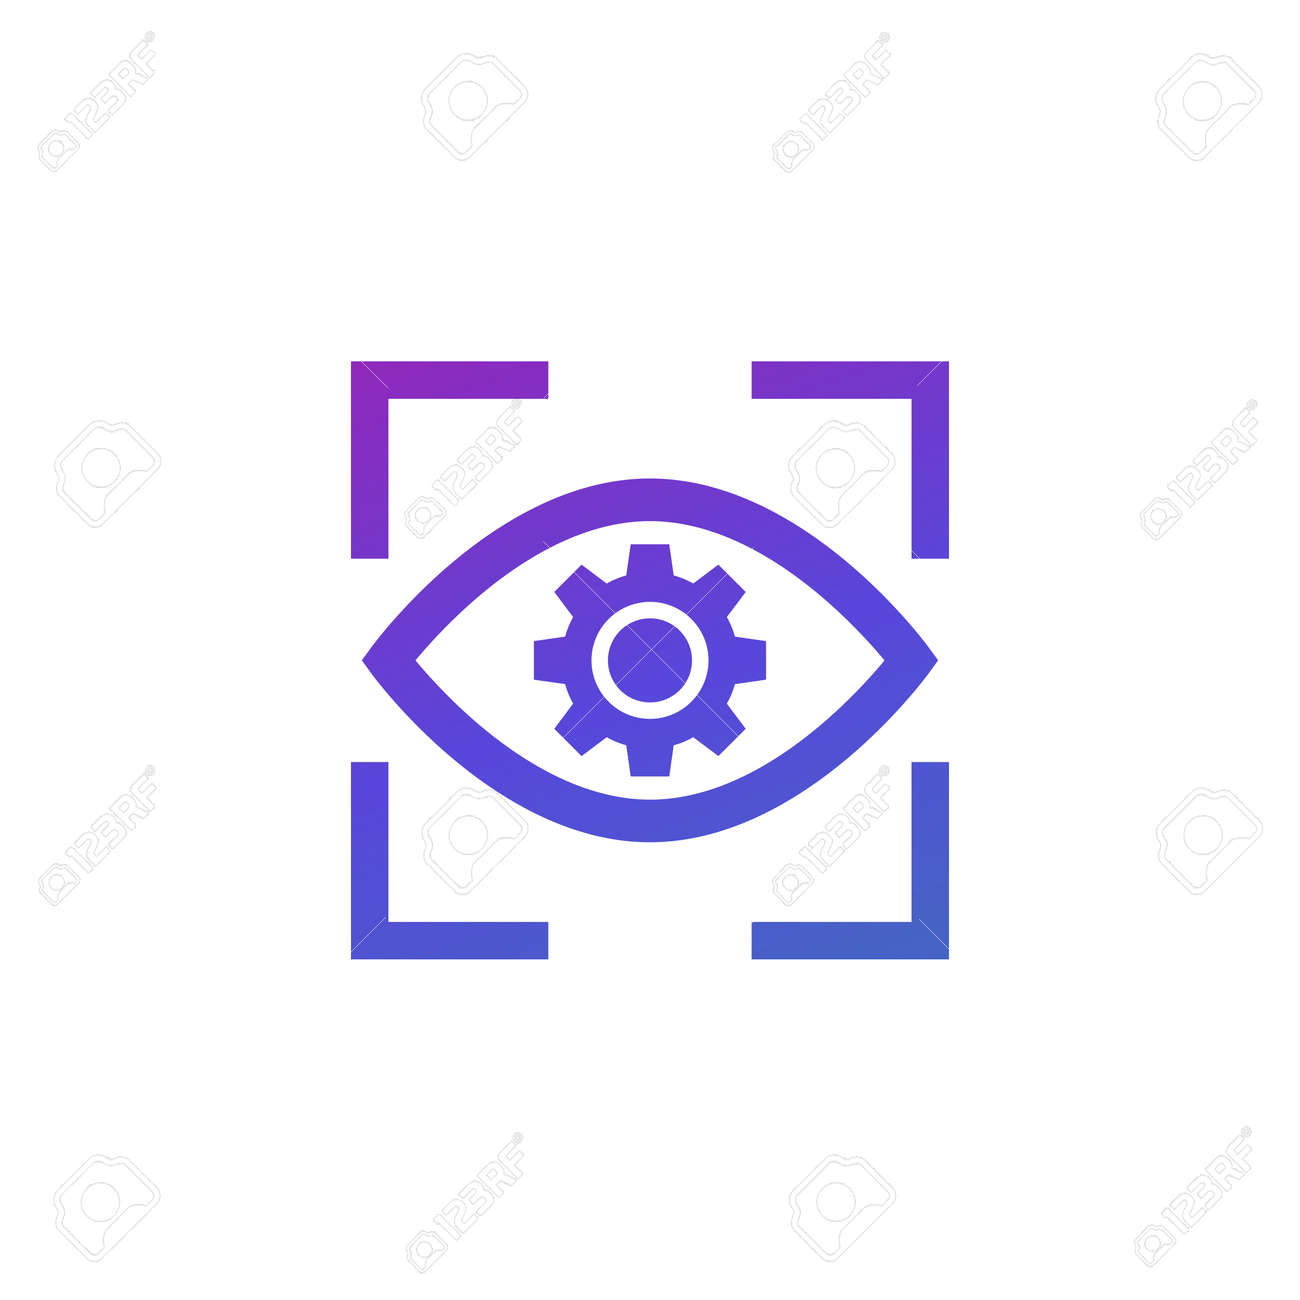 eye with gear icon on white - 159798001